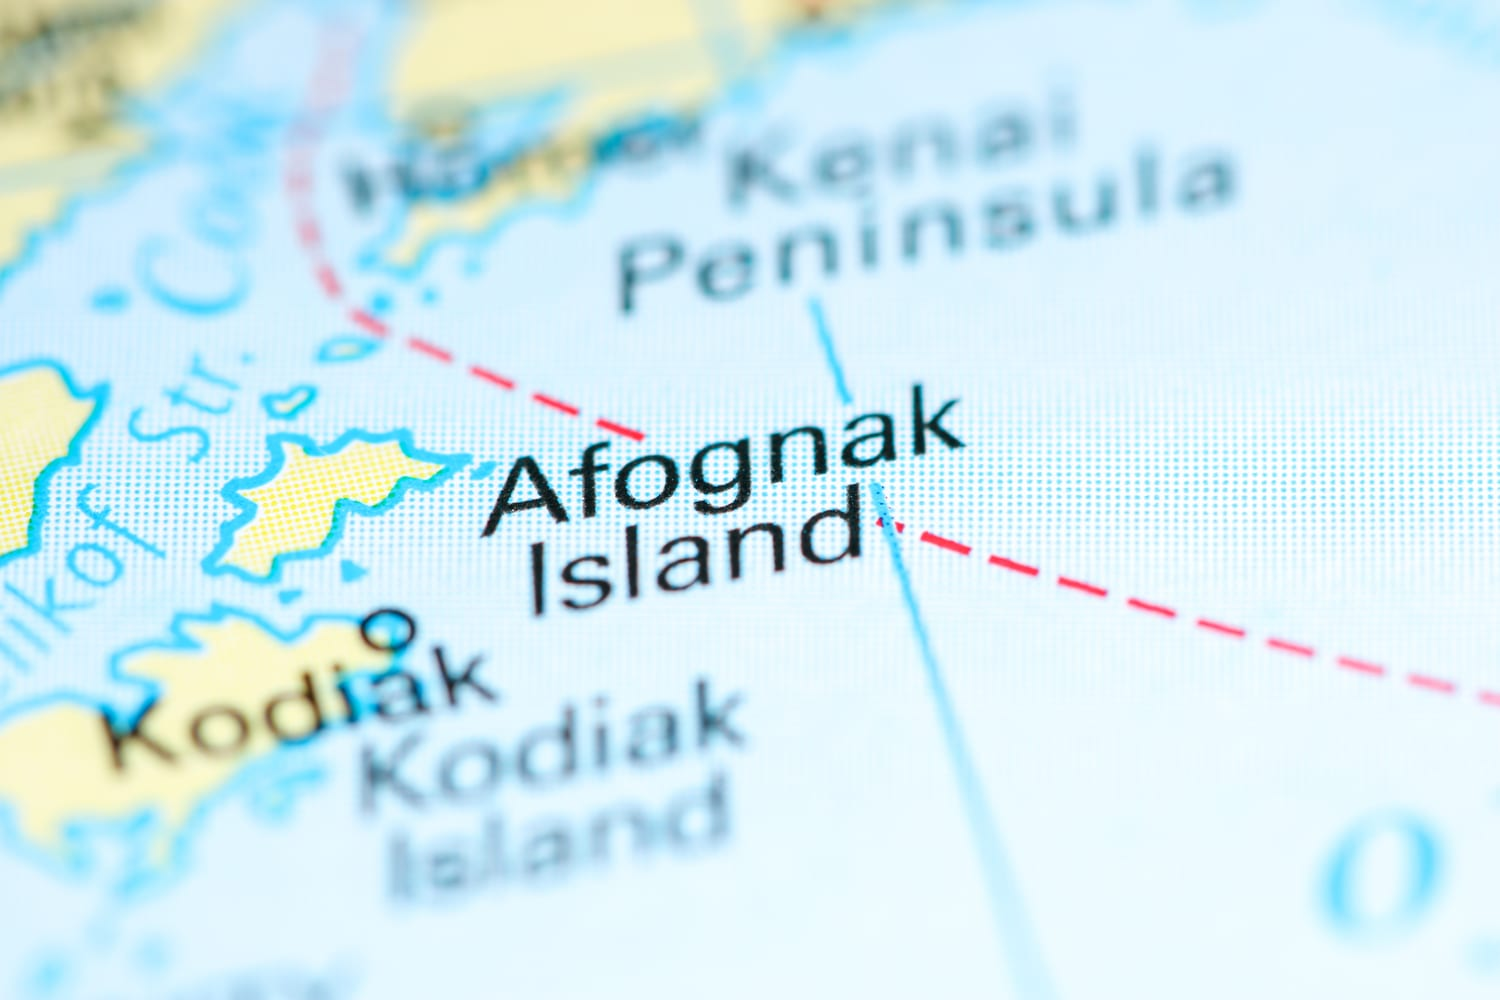 A map of Afognak Island seen while constructing a travel packing list for an Alaskan adventure.